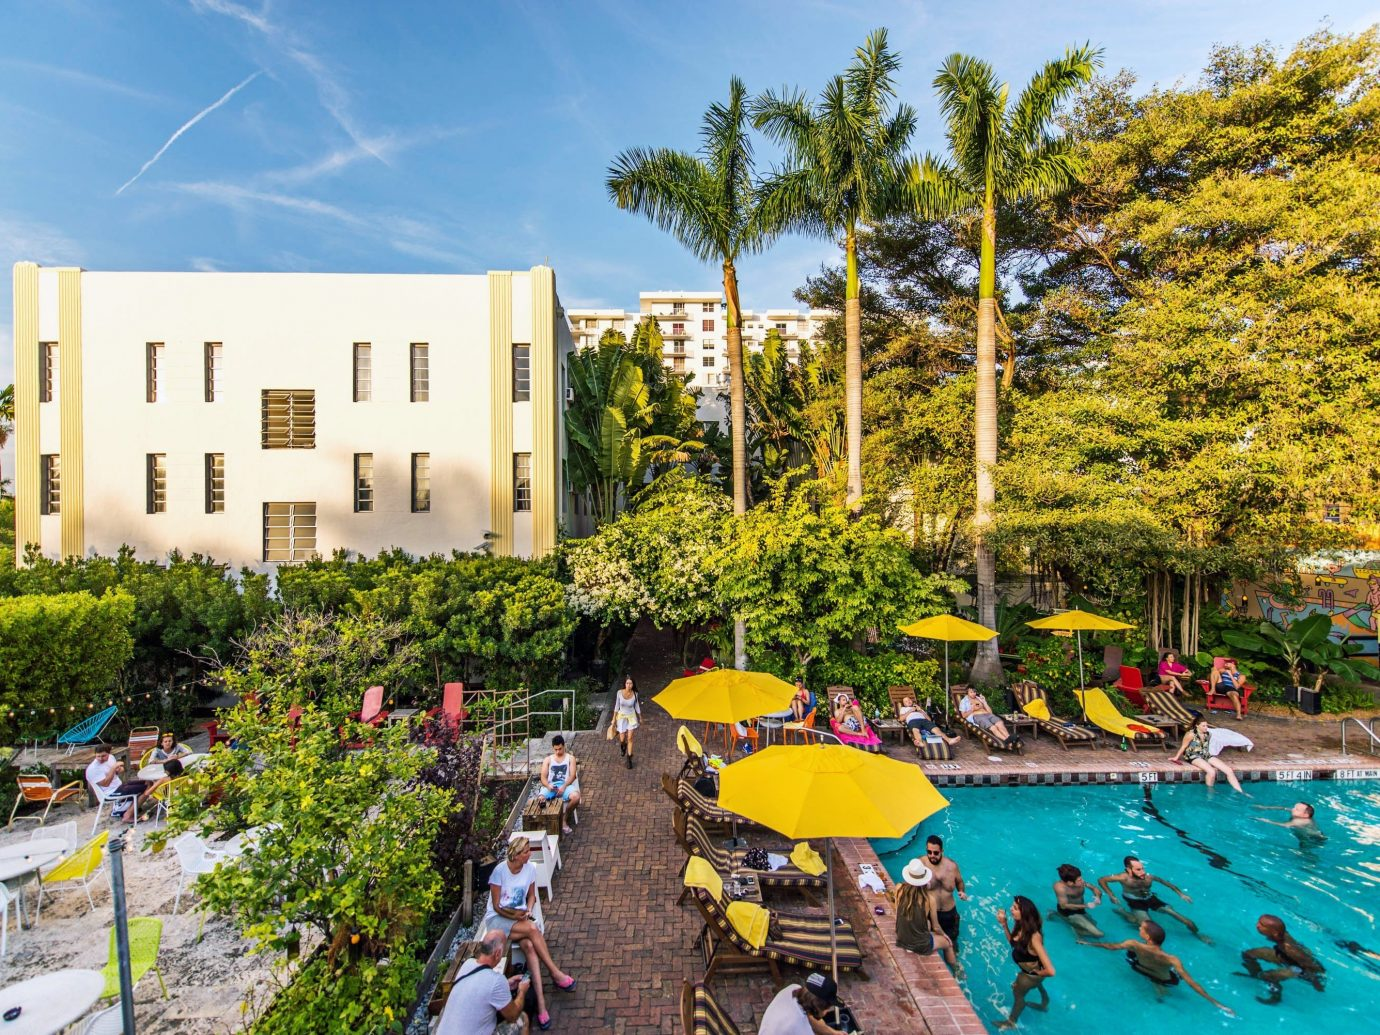 Hotels tree sky outdoor leisure neighbourhood estate Resort vacation tourism residential area day